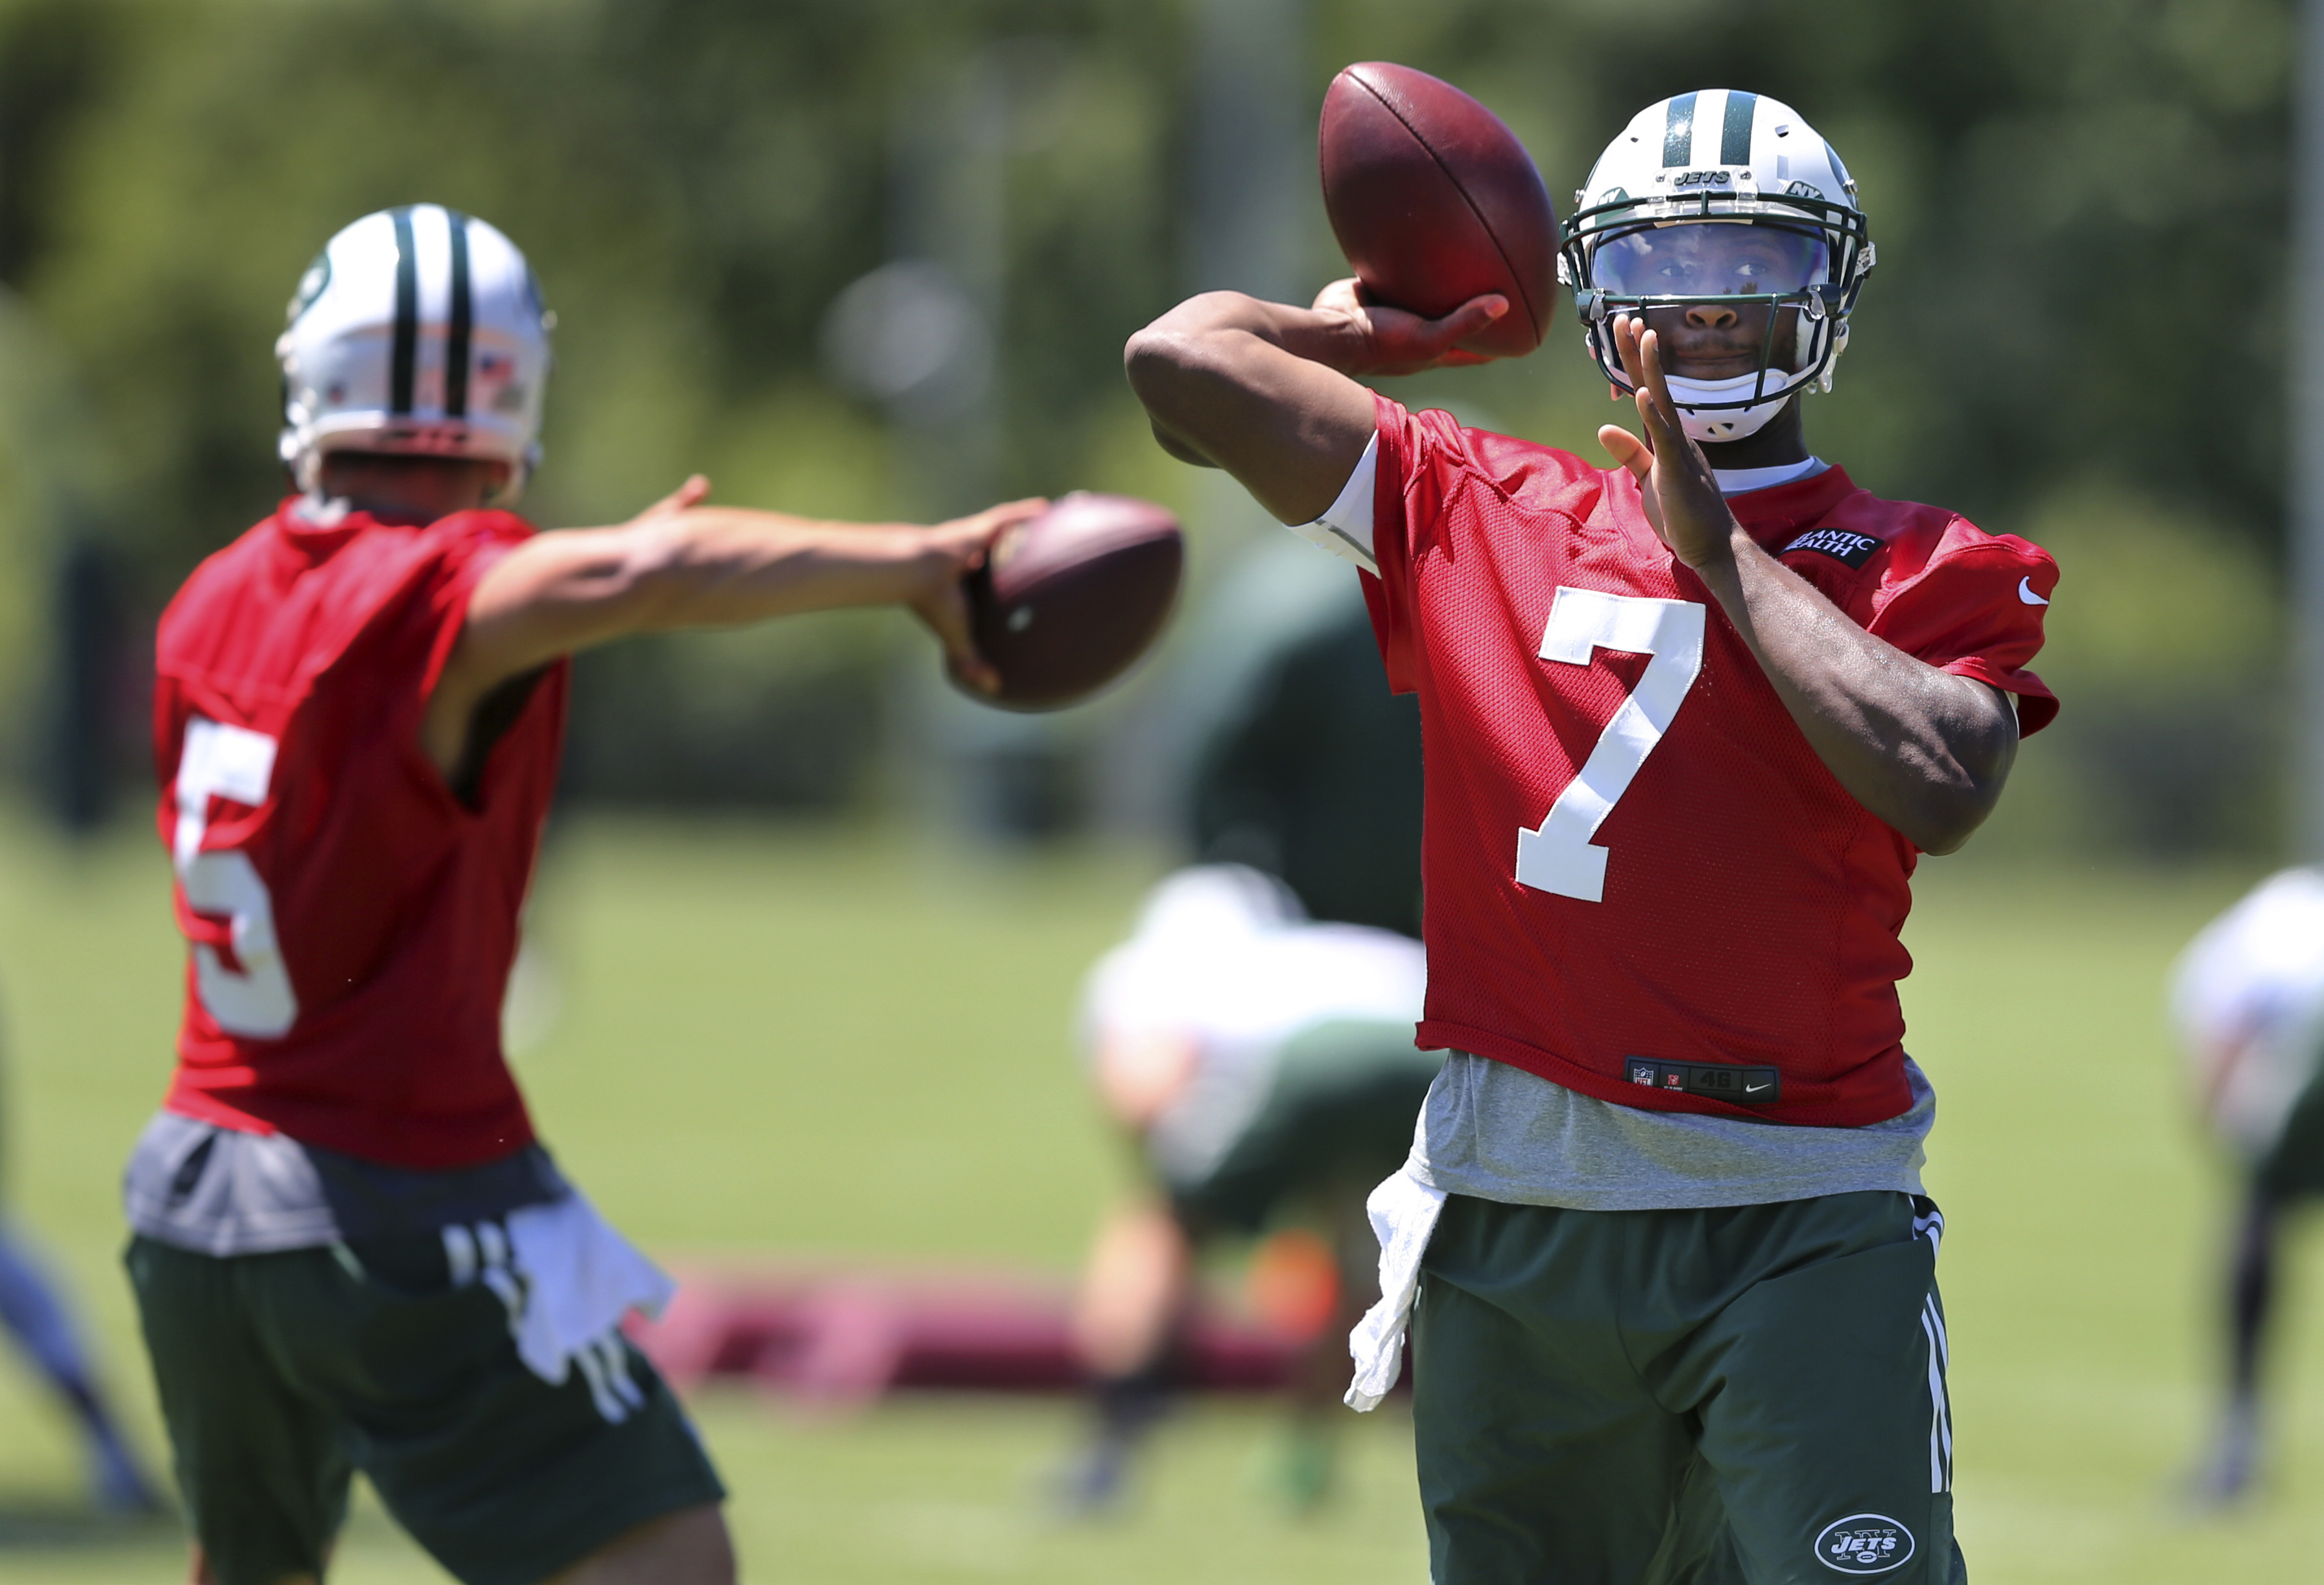 New York Jets quarterbacks Christian Hackenberg (5) and Geno Smith (7) throw passes during NFL football practice Tuesday, June 14, 2016, in Florham Park, N.J. (AP Photo/Mel Evans)